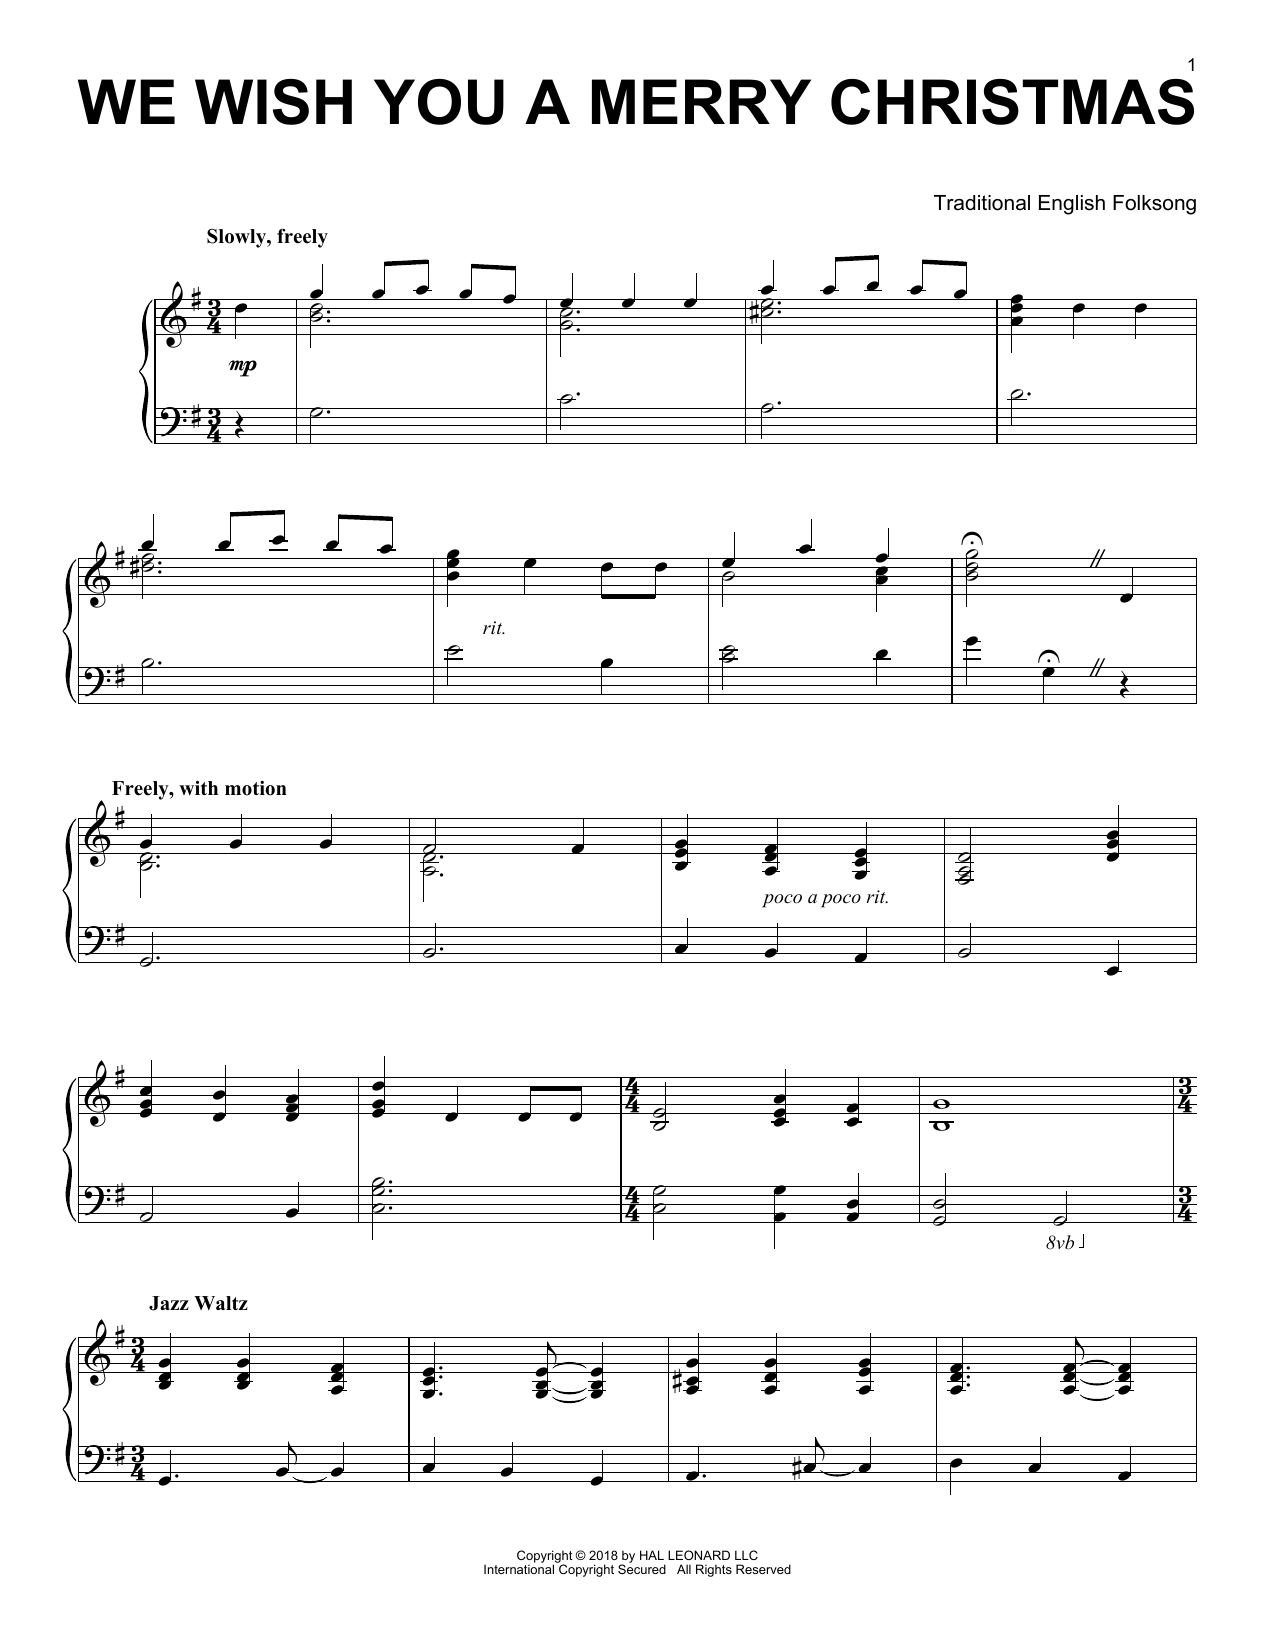 Download Traditional English Folksong 'We Wish You A Merry Christmas' Digital Sheet Music Notes & Chords and start playing in minutes